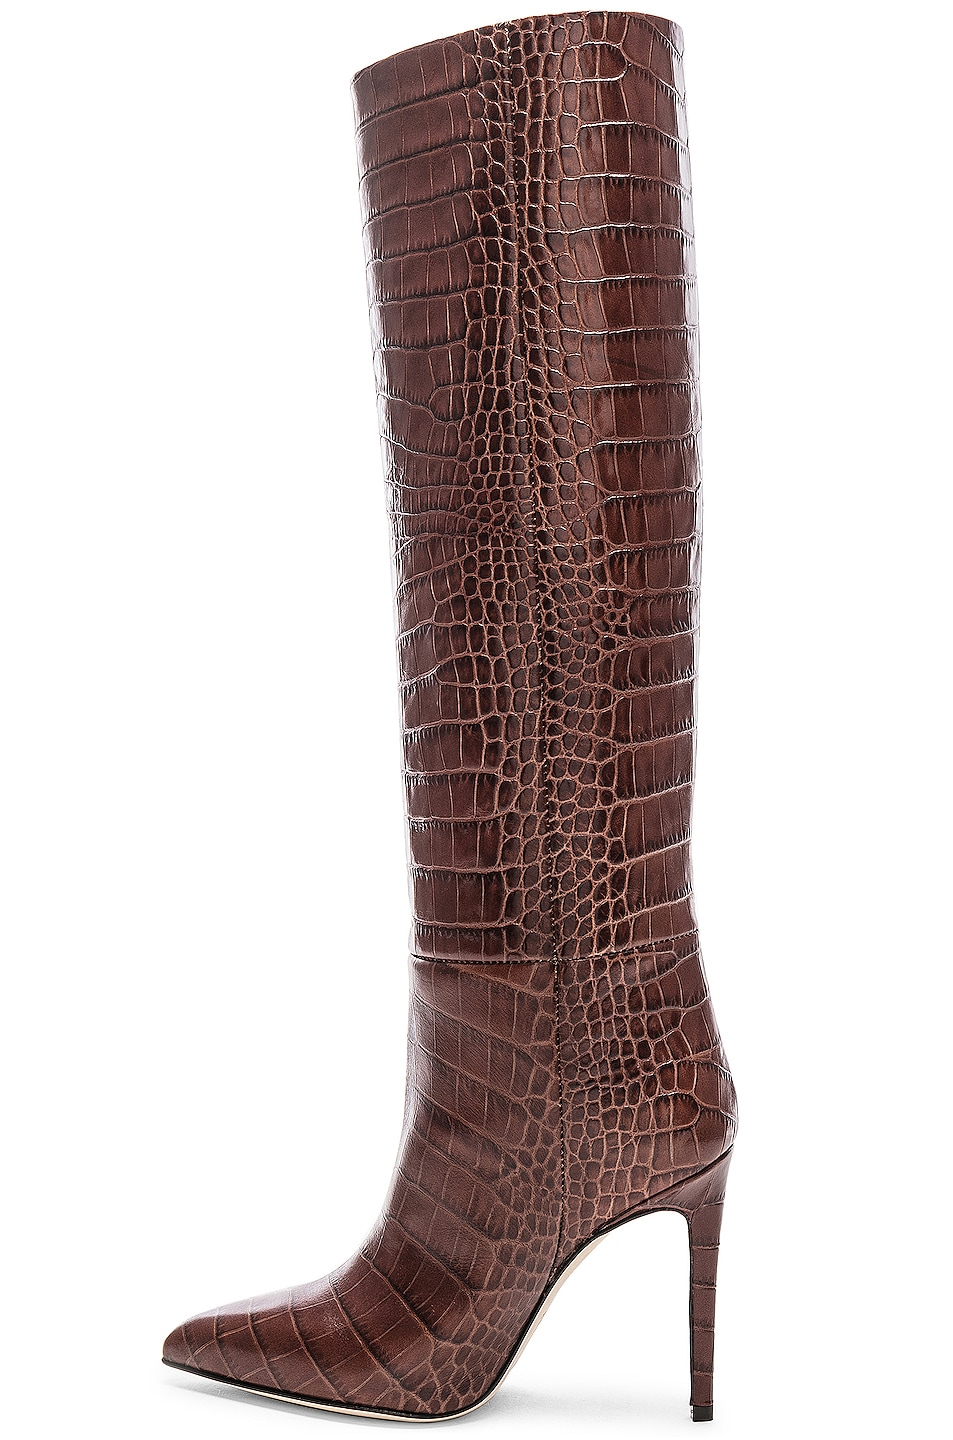 Image 5 of Paris Texas Stiletto Knee High Boot in Brown Croc